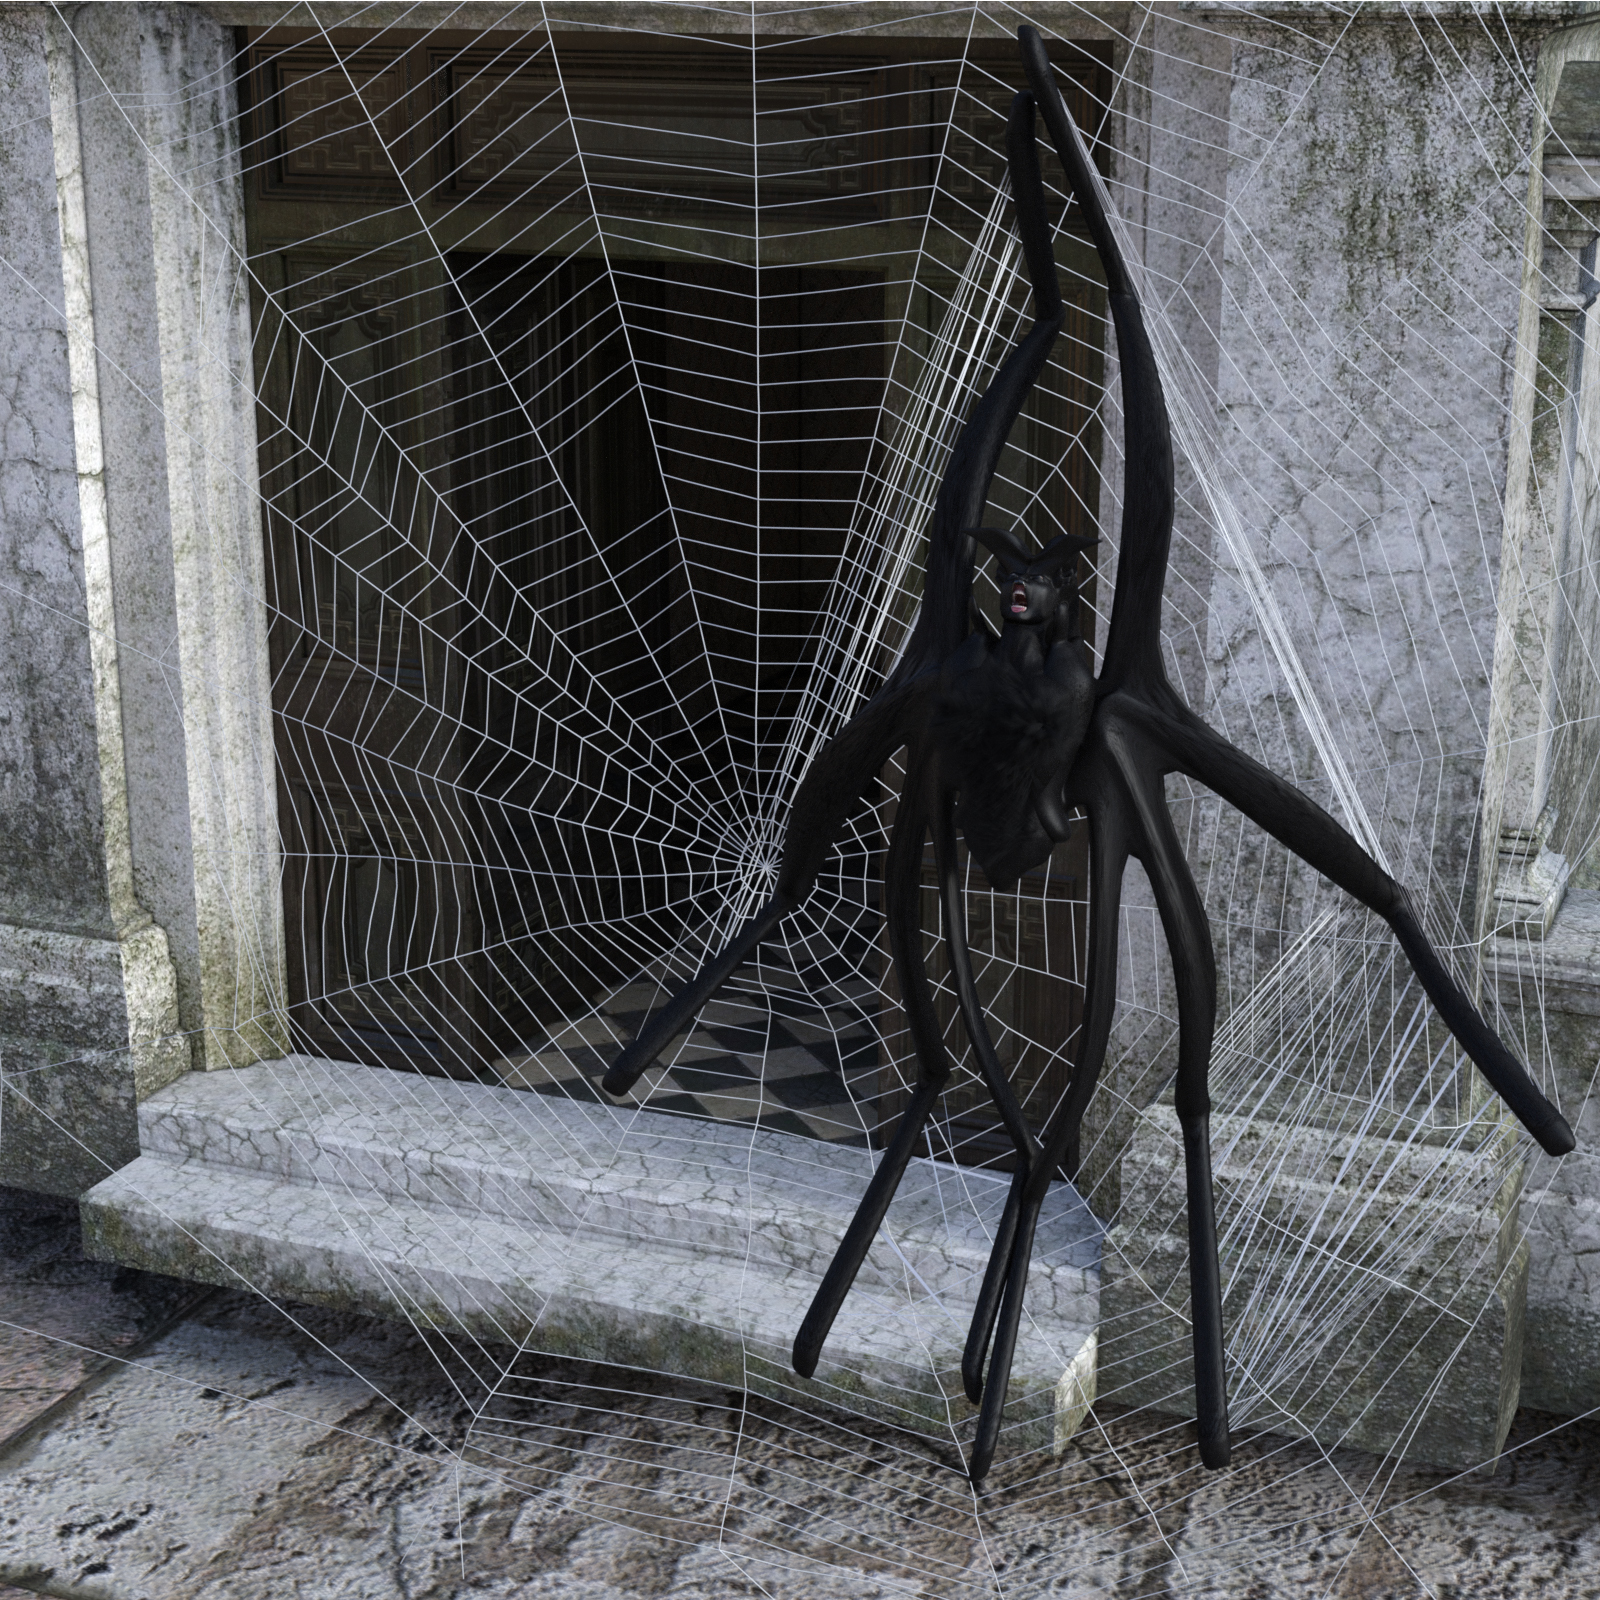 Spider for G8F by biala